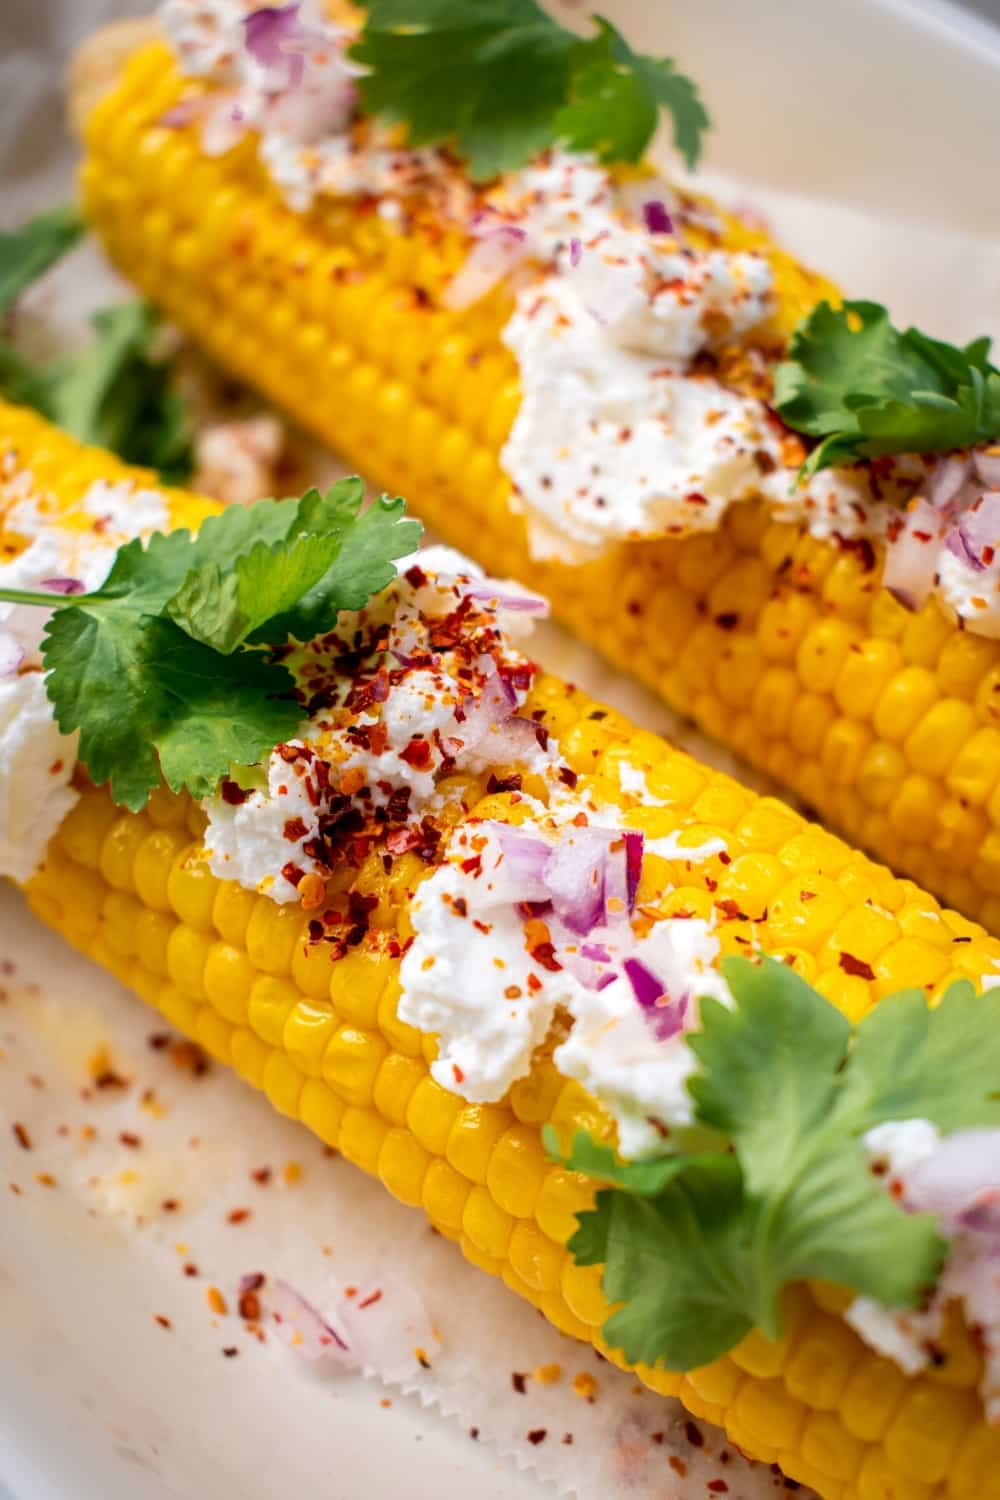 Two pieces of corn on the cob with a Mexican queso fresco mixture and cilantro leaves on top.